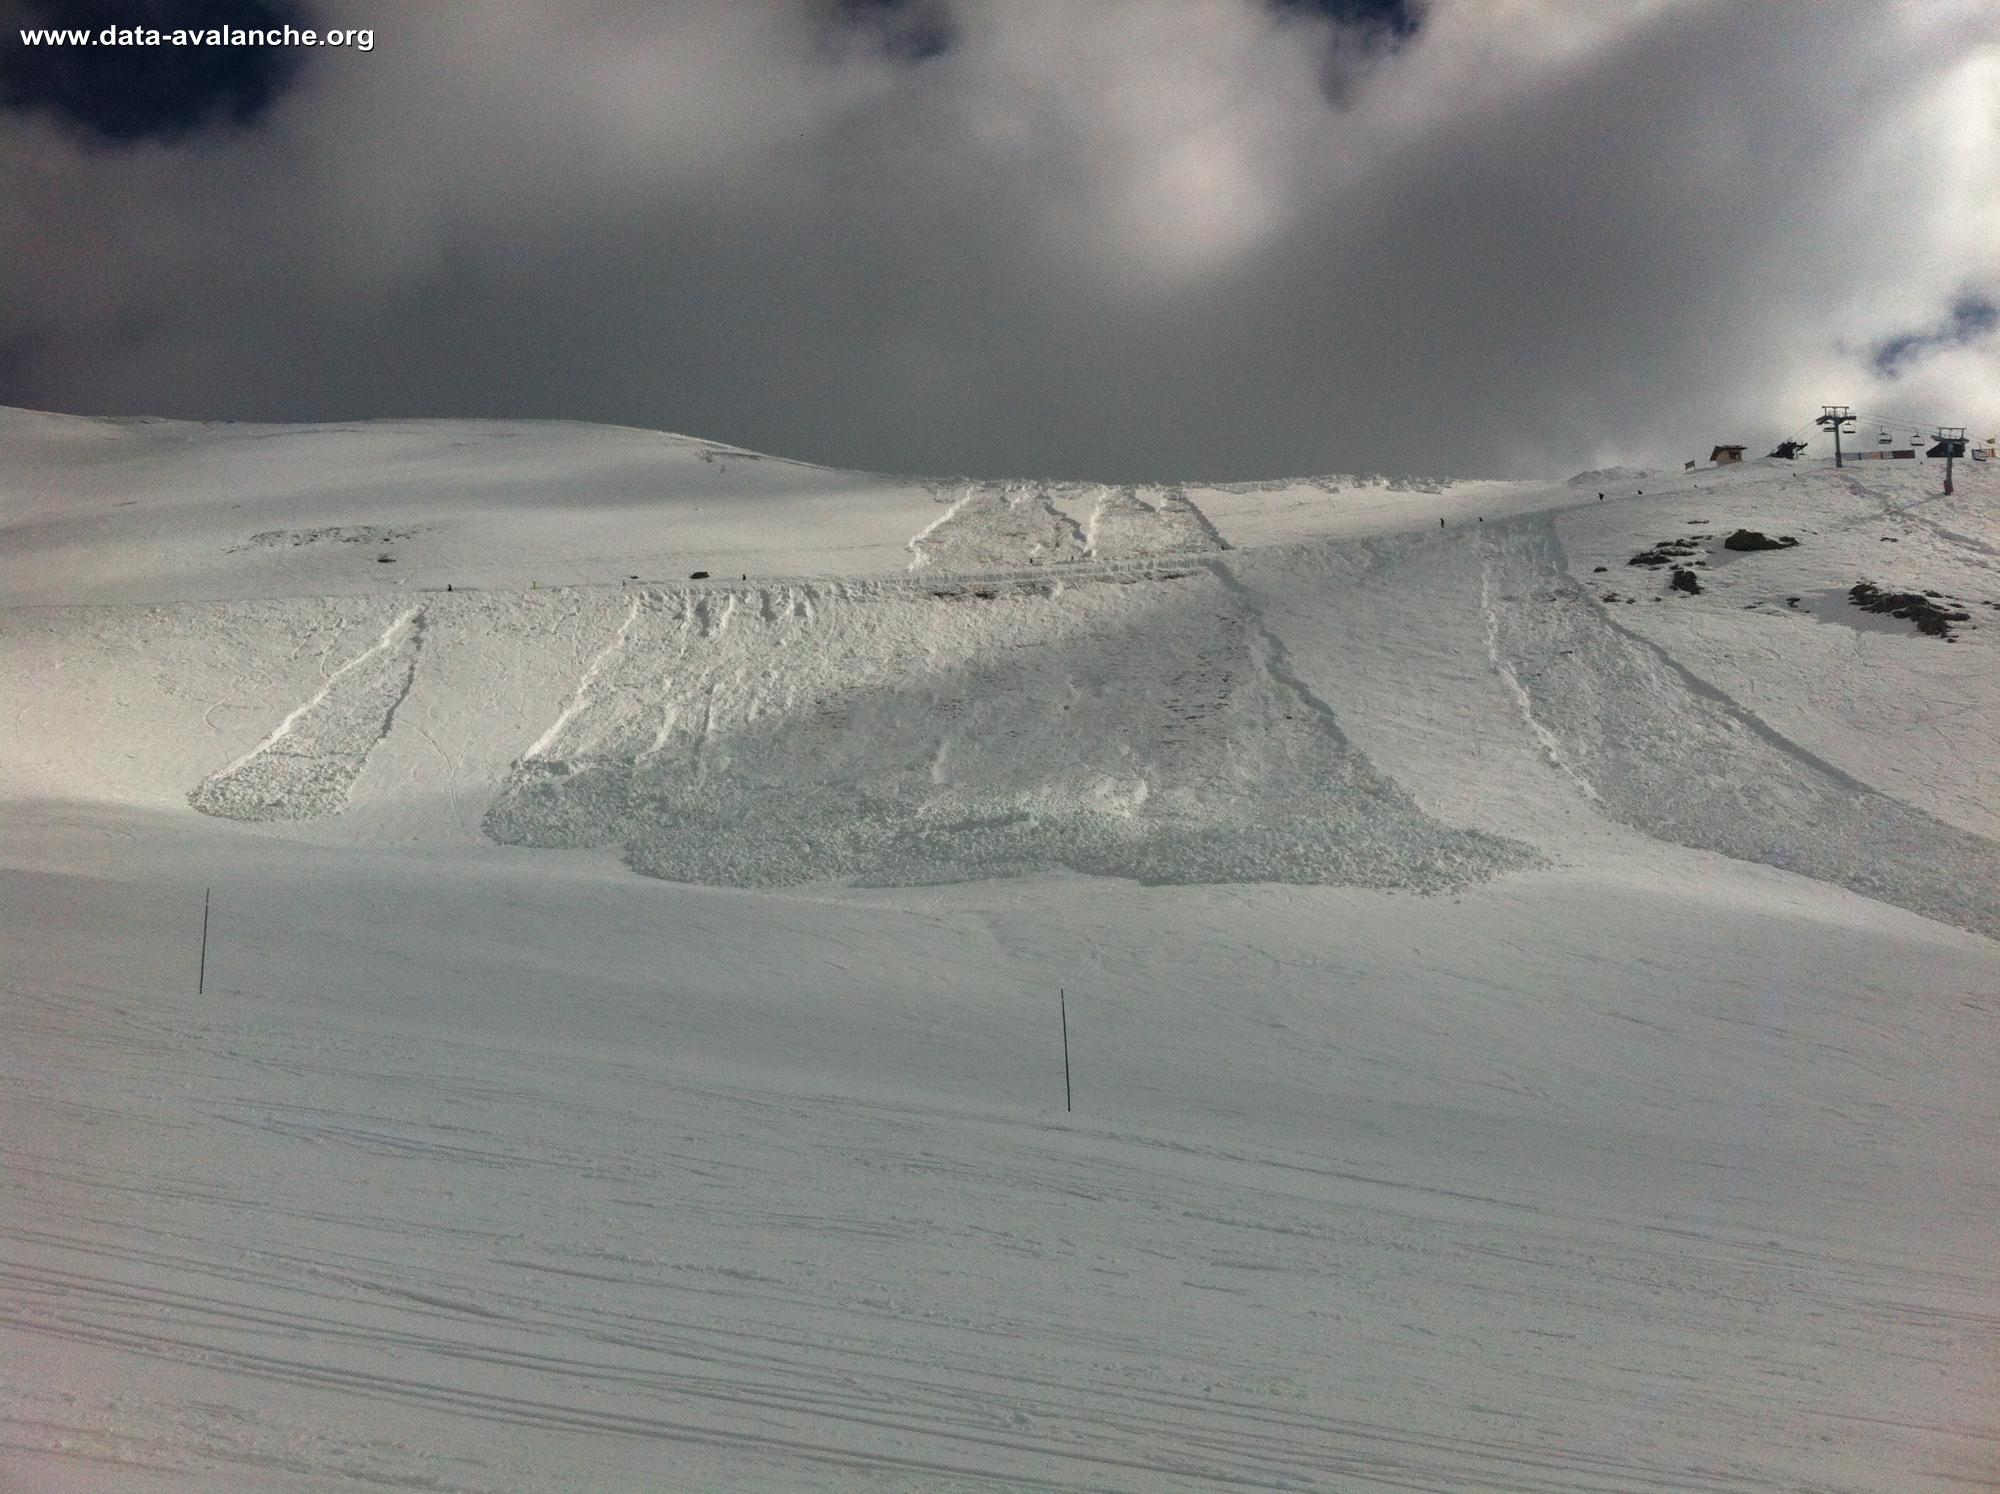 Avalanche Ecrins, secteur La Cucumelle, Face Sud - Photo 1